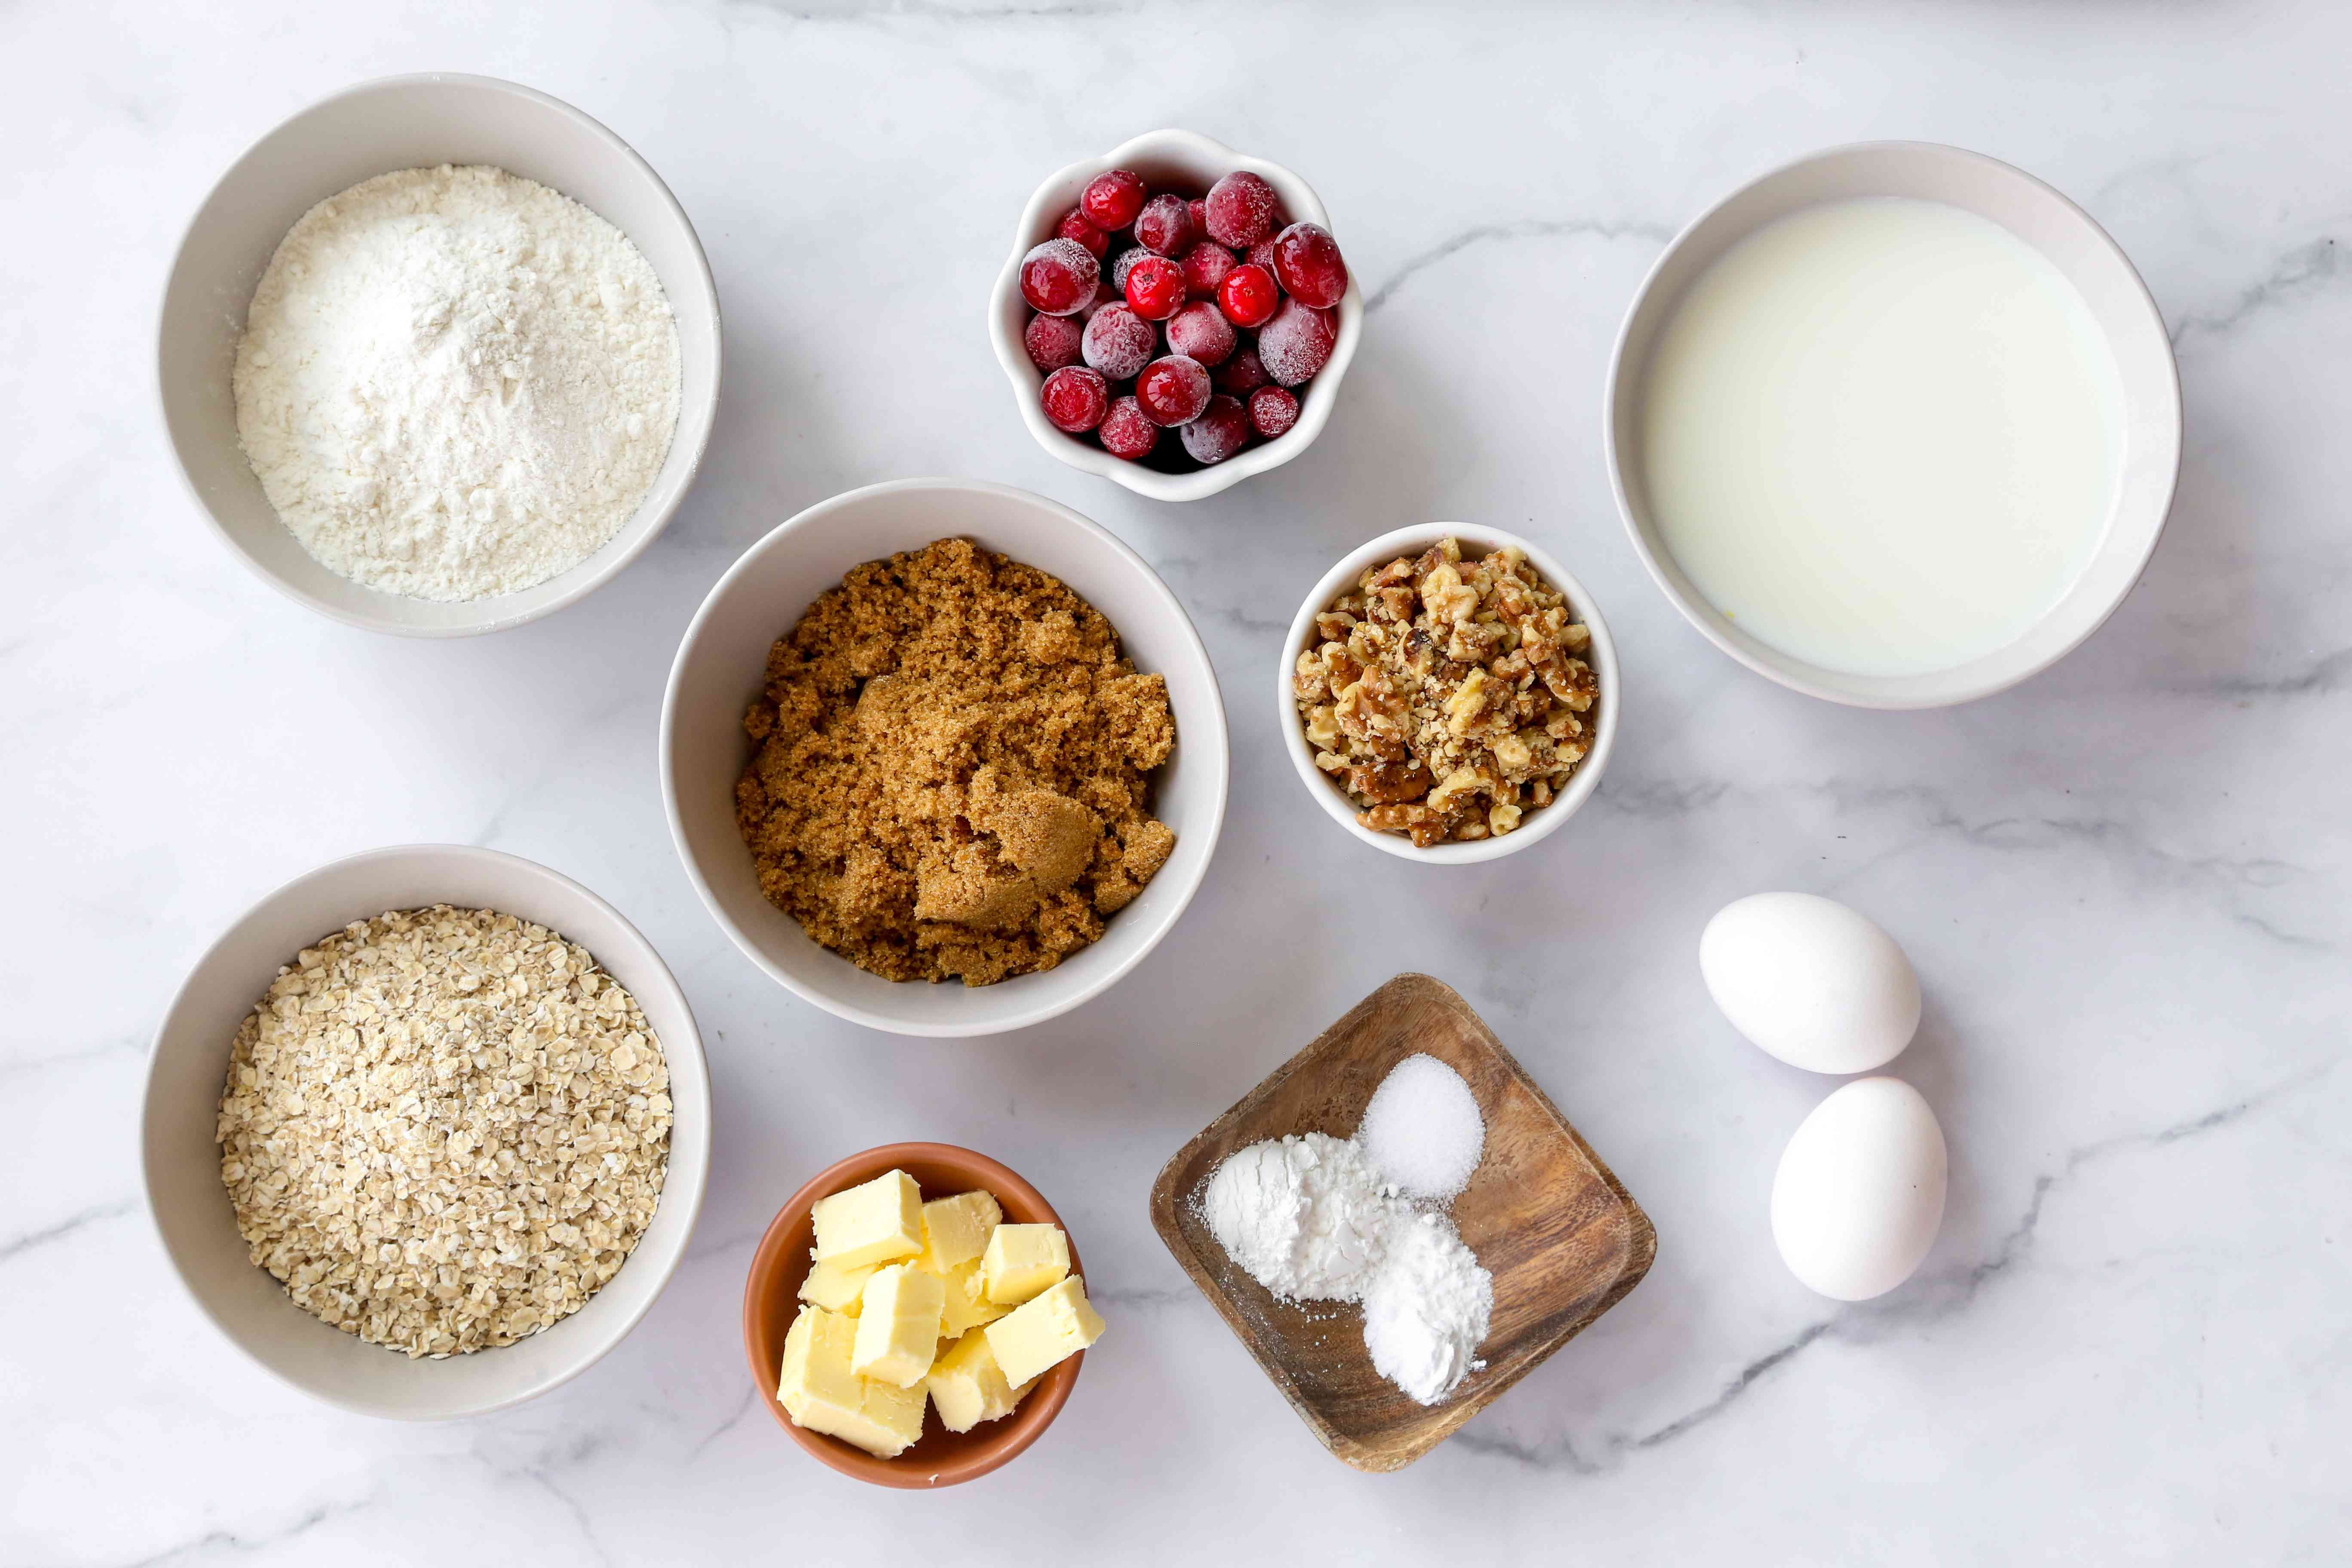 Cranberry Oatmeal Muffins ingredients